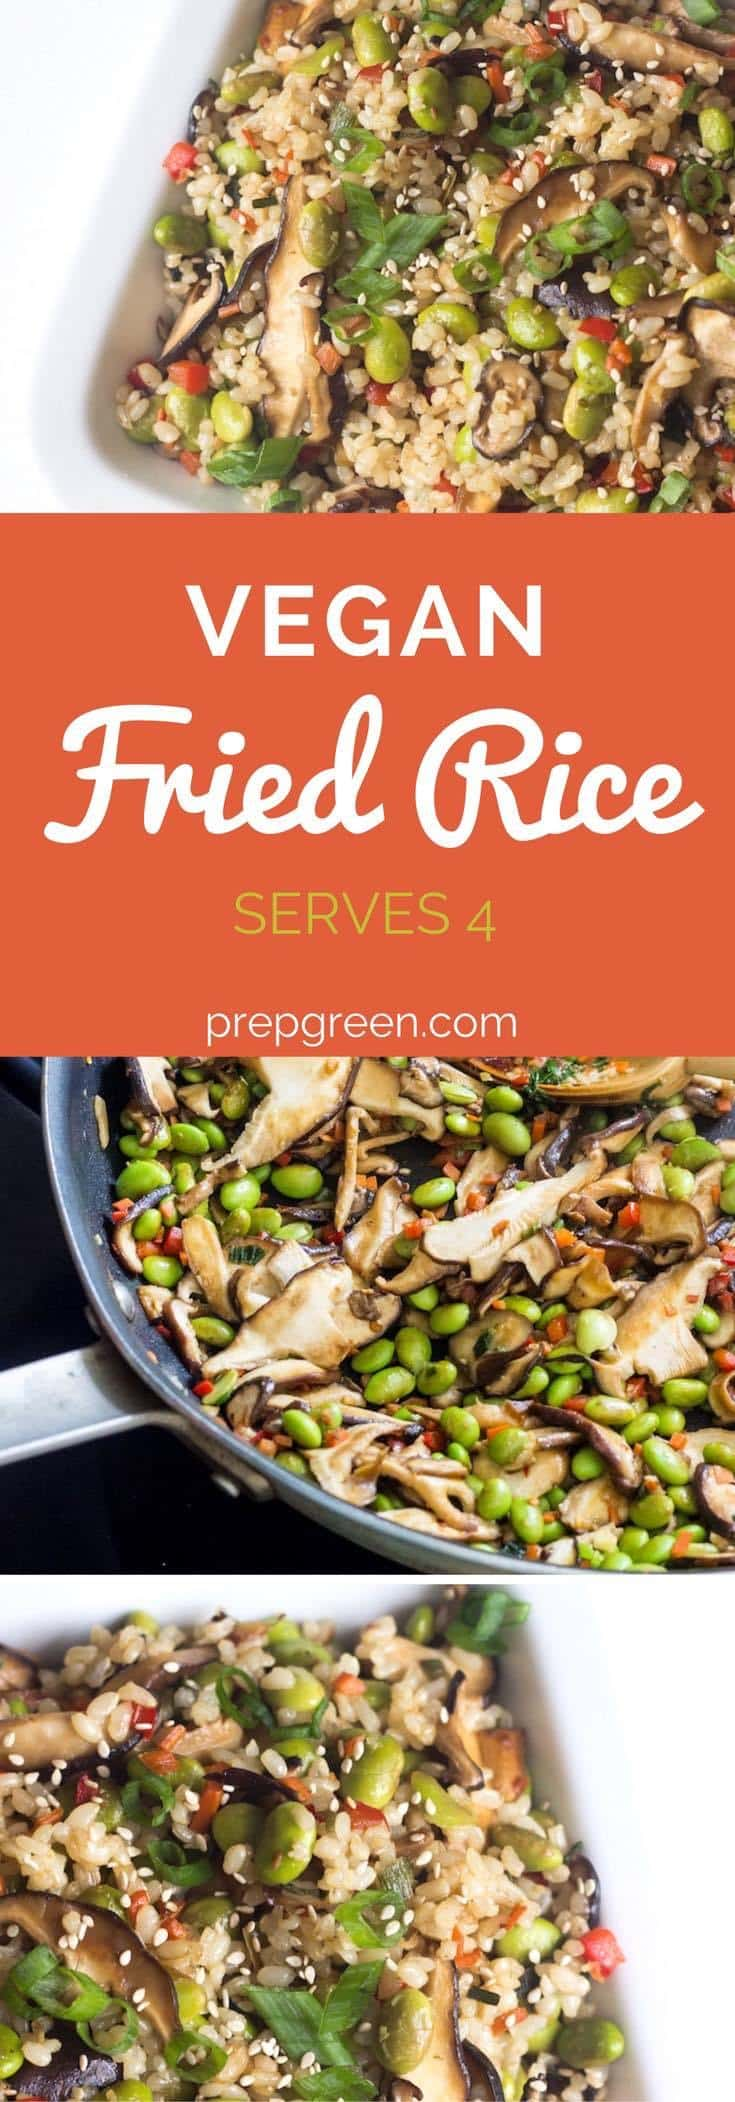 vegan fried rice pin